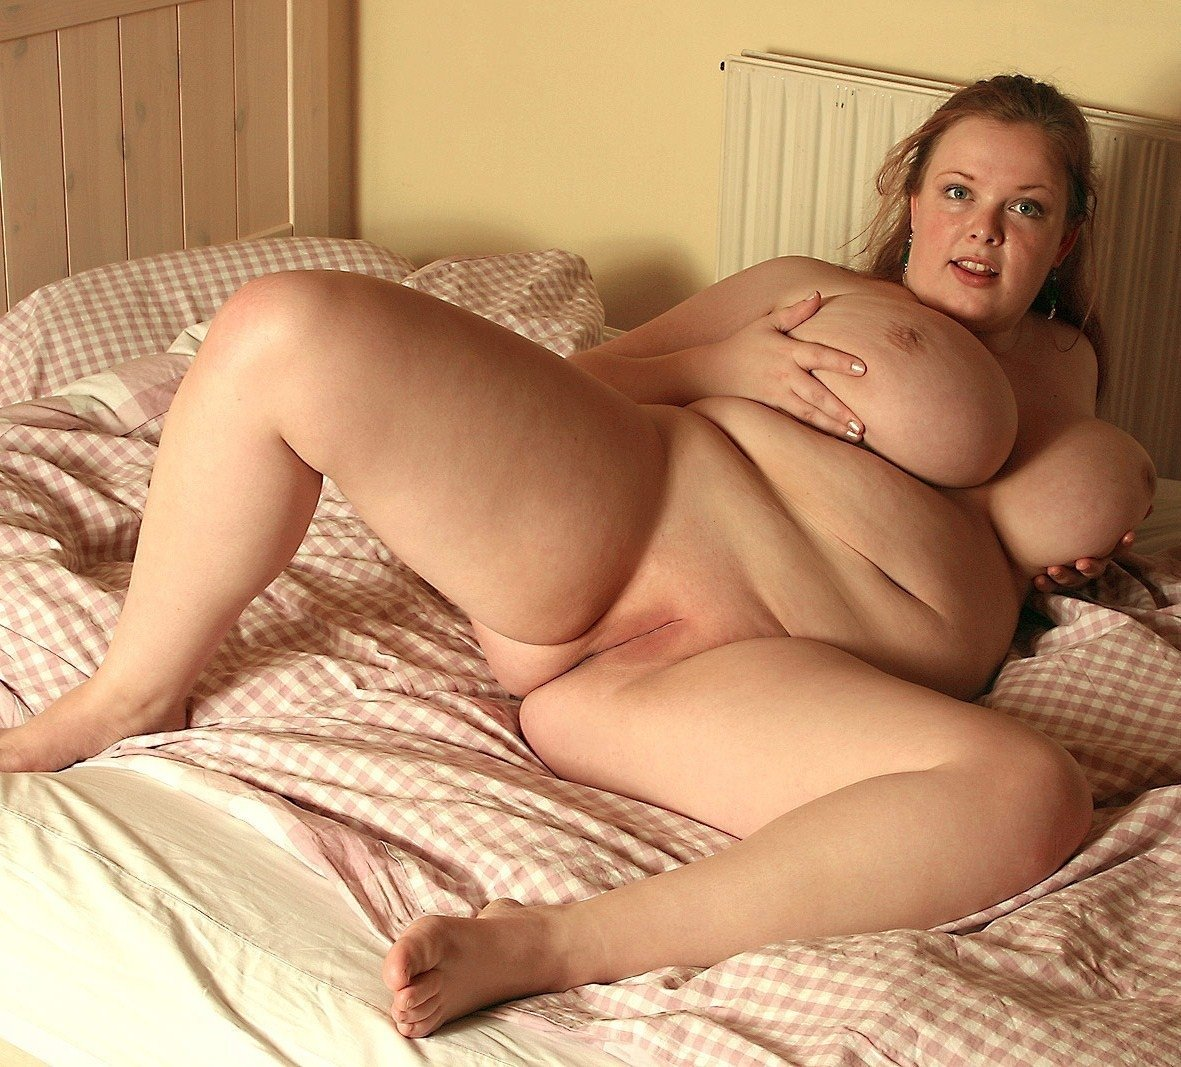 Free naked fat women video — photo 14